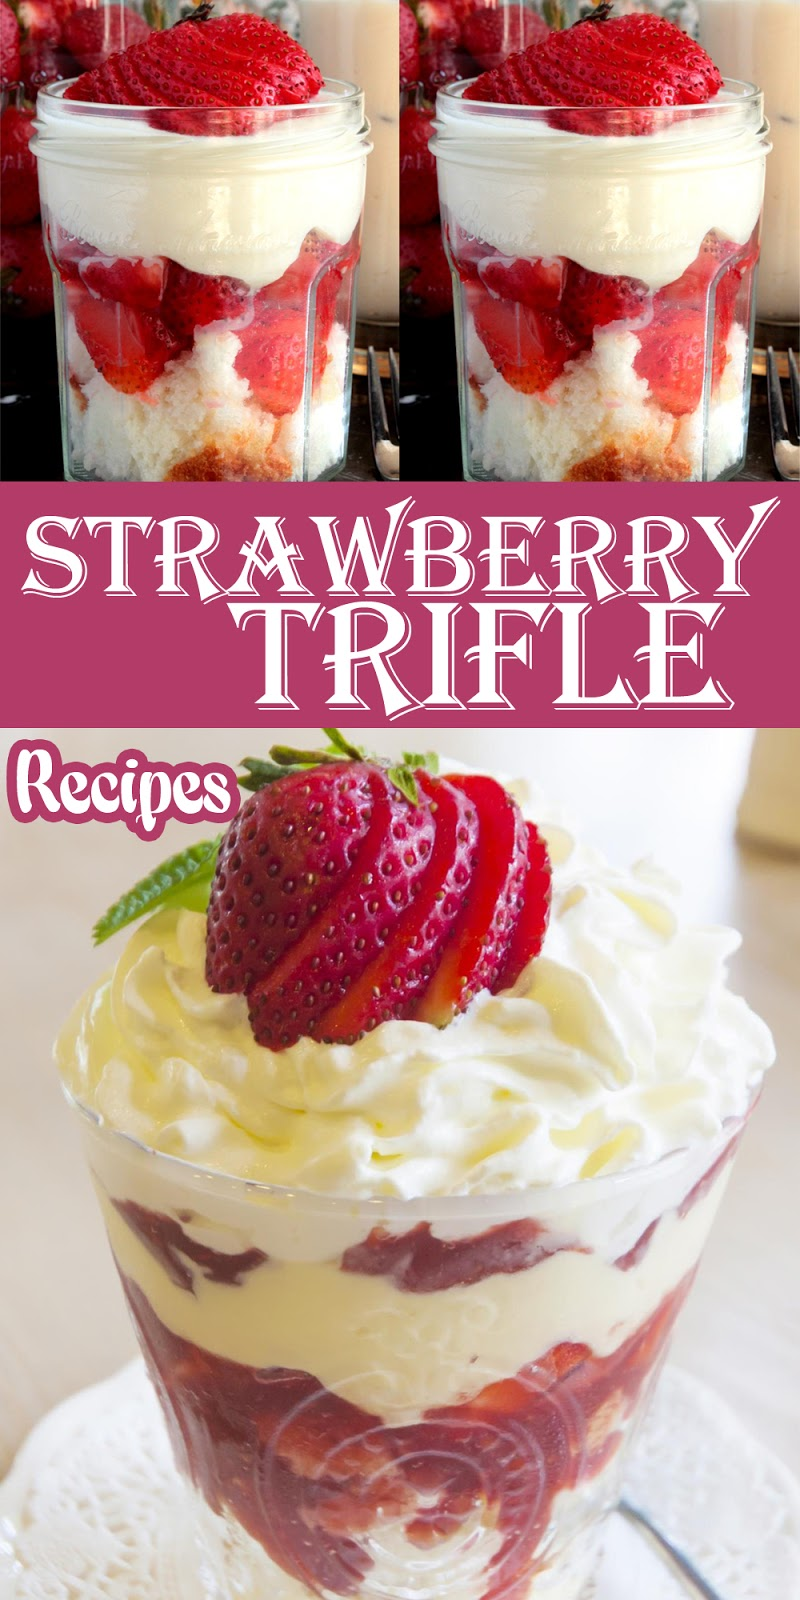 STRAWBERY TRIFLE